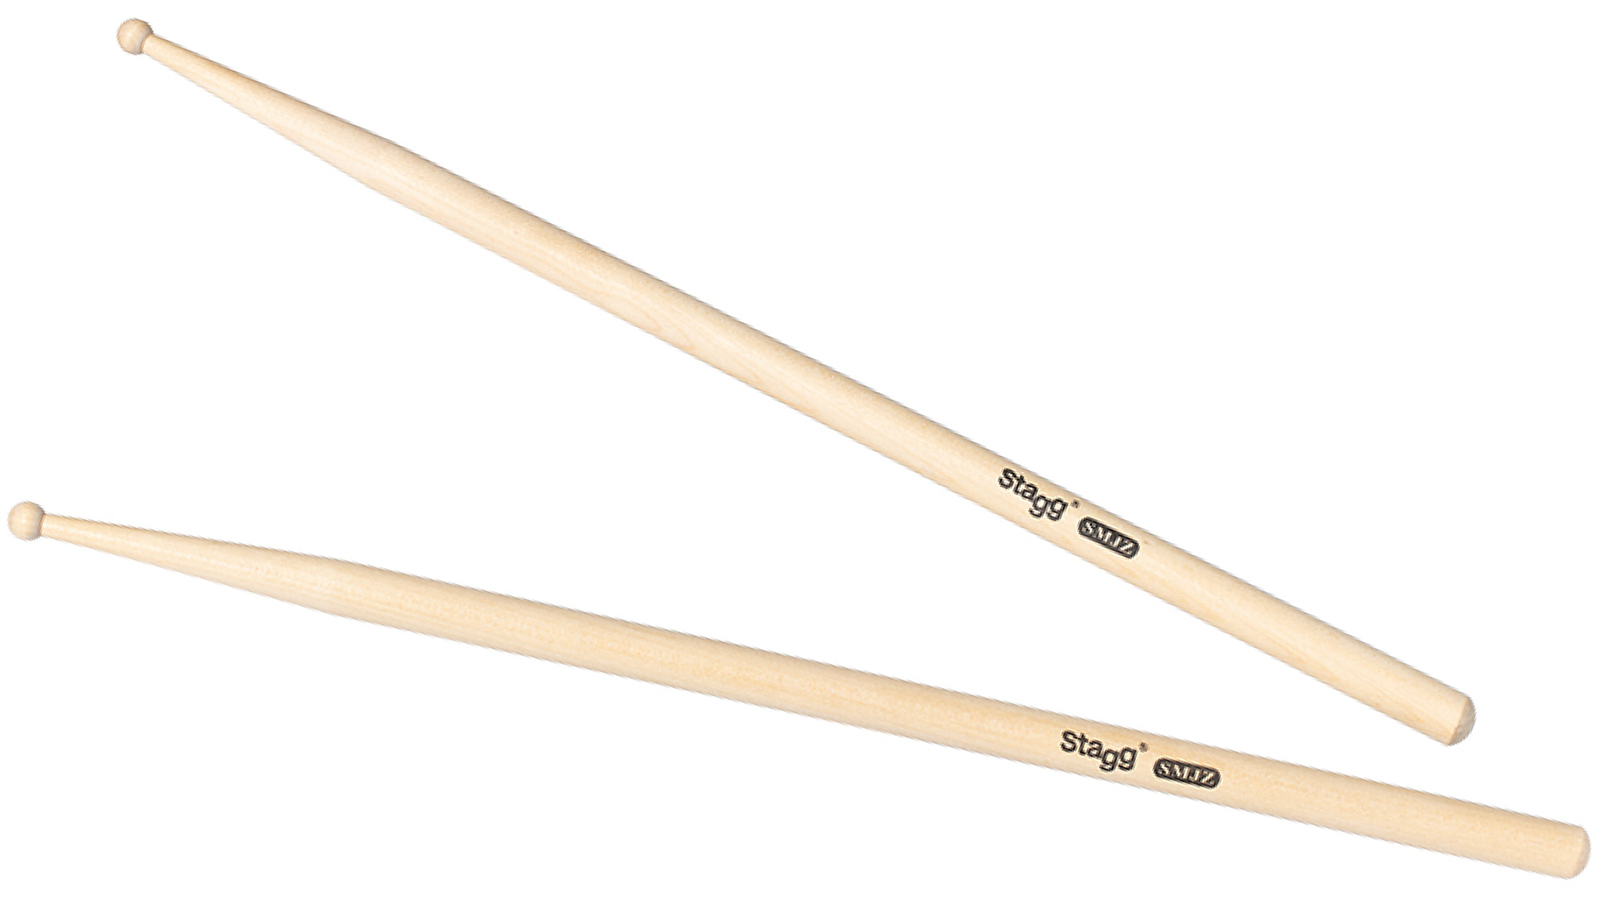 Stagg Sticks SM-JZ 12er Packung